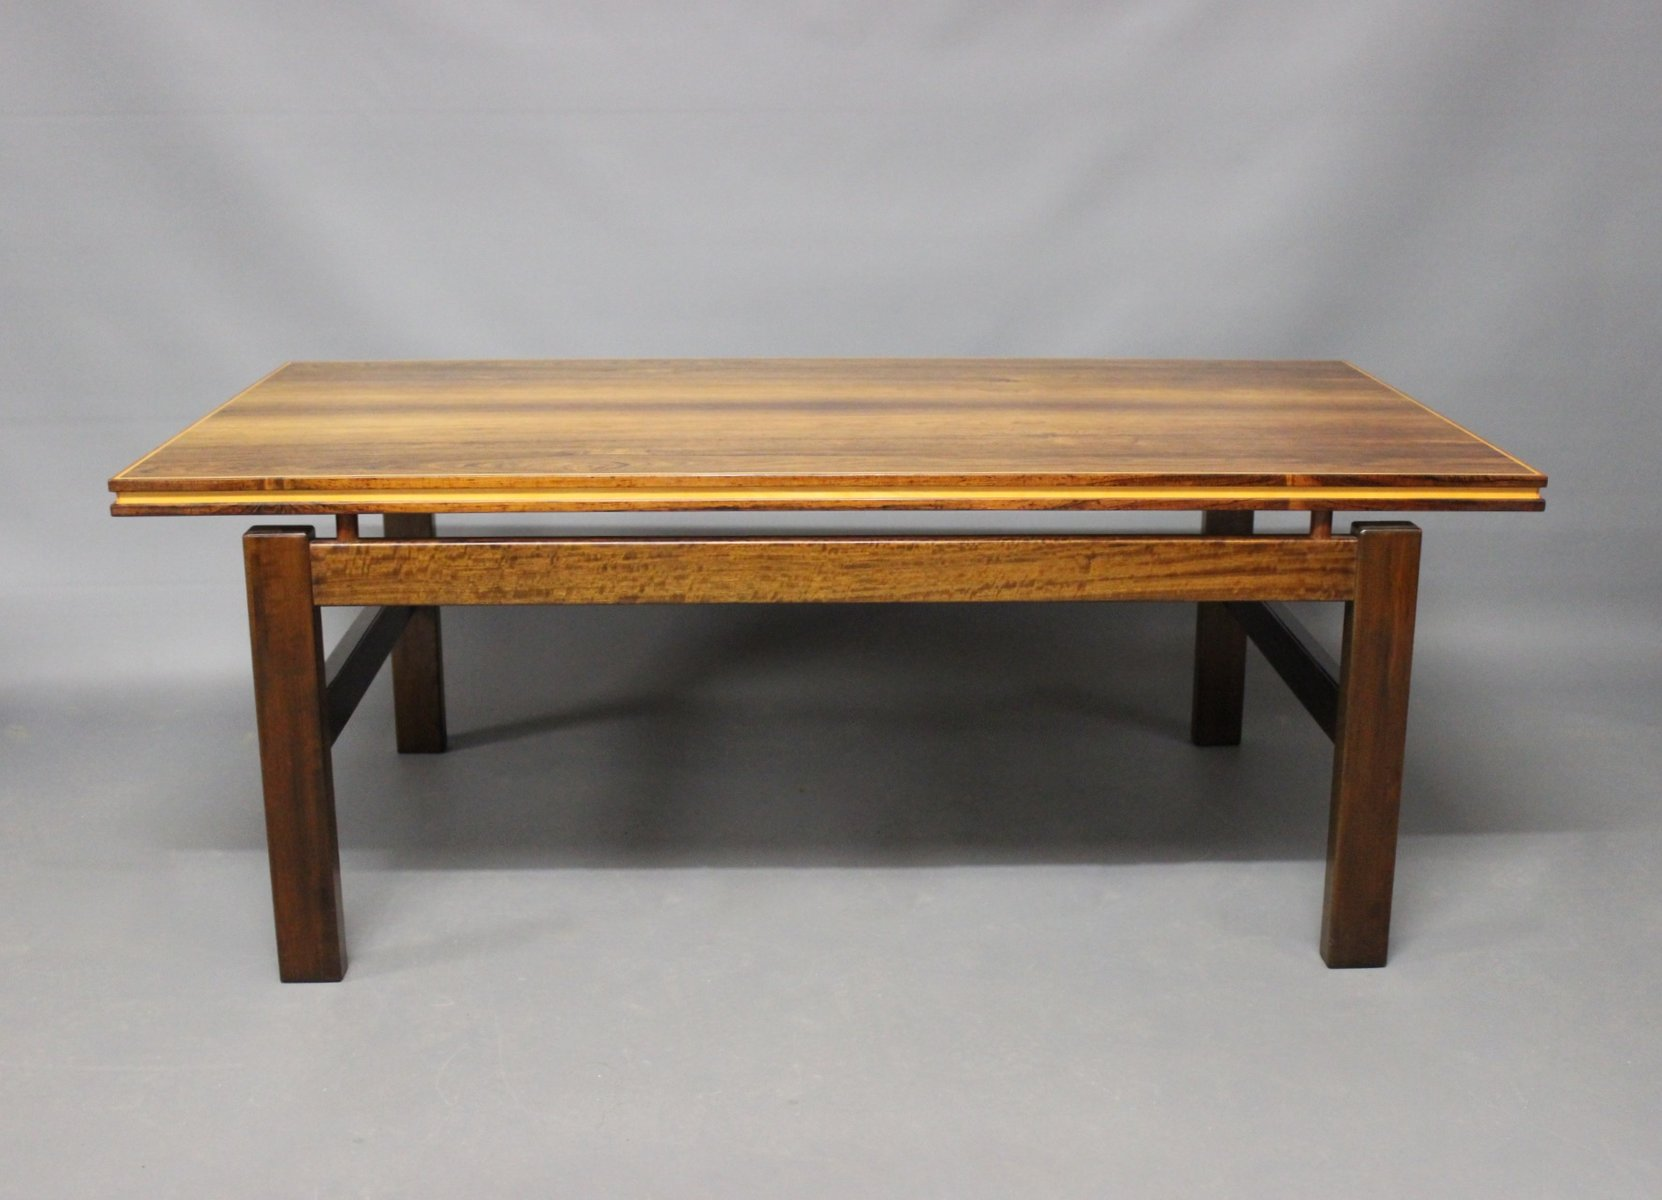 Danish Rosewood Coffee Table with Floating Top 1960s for sale at